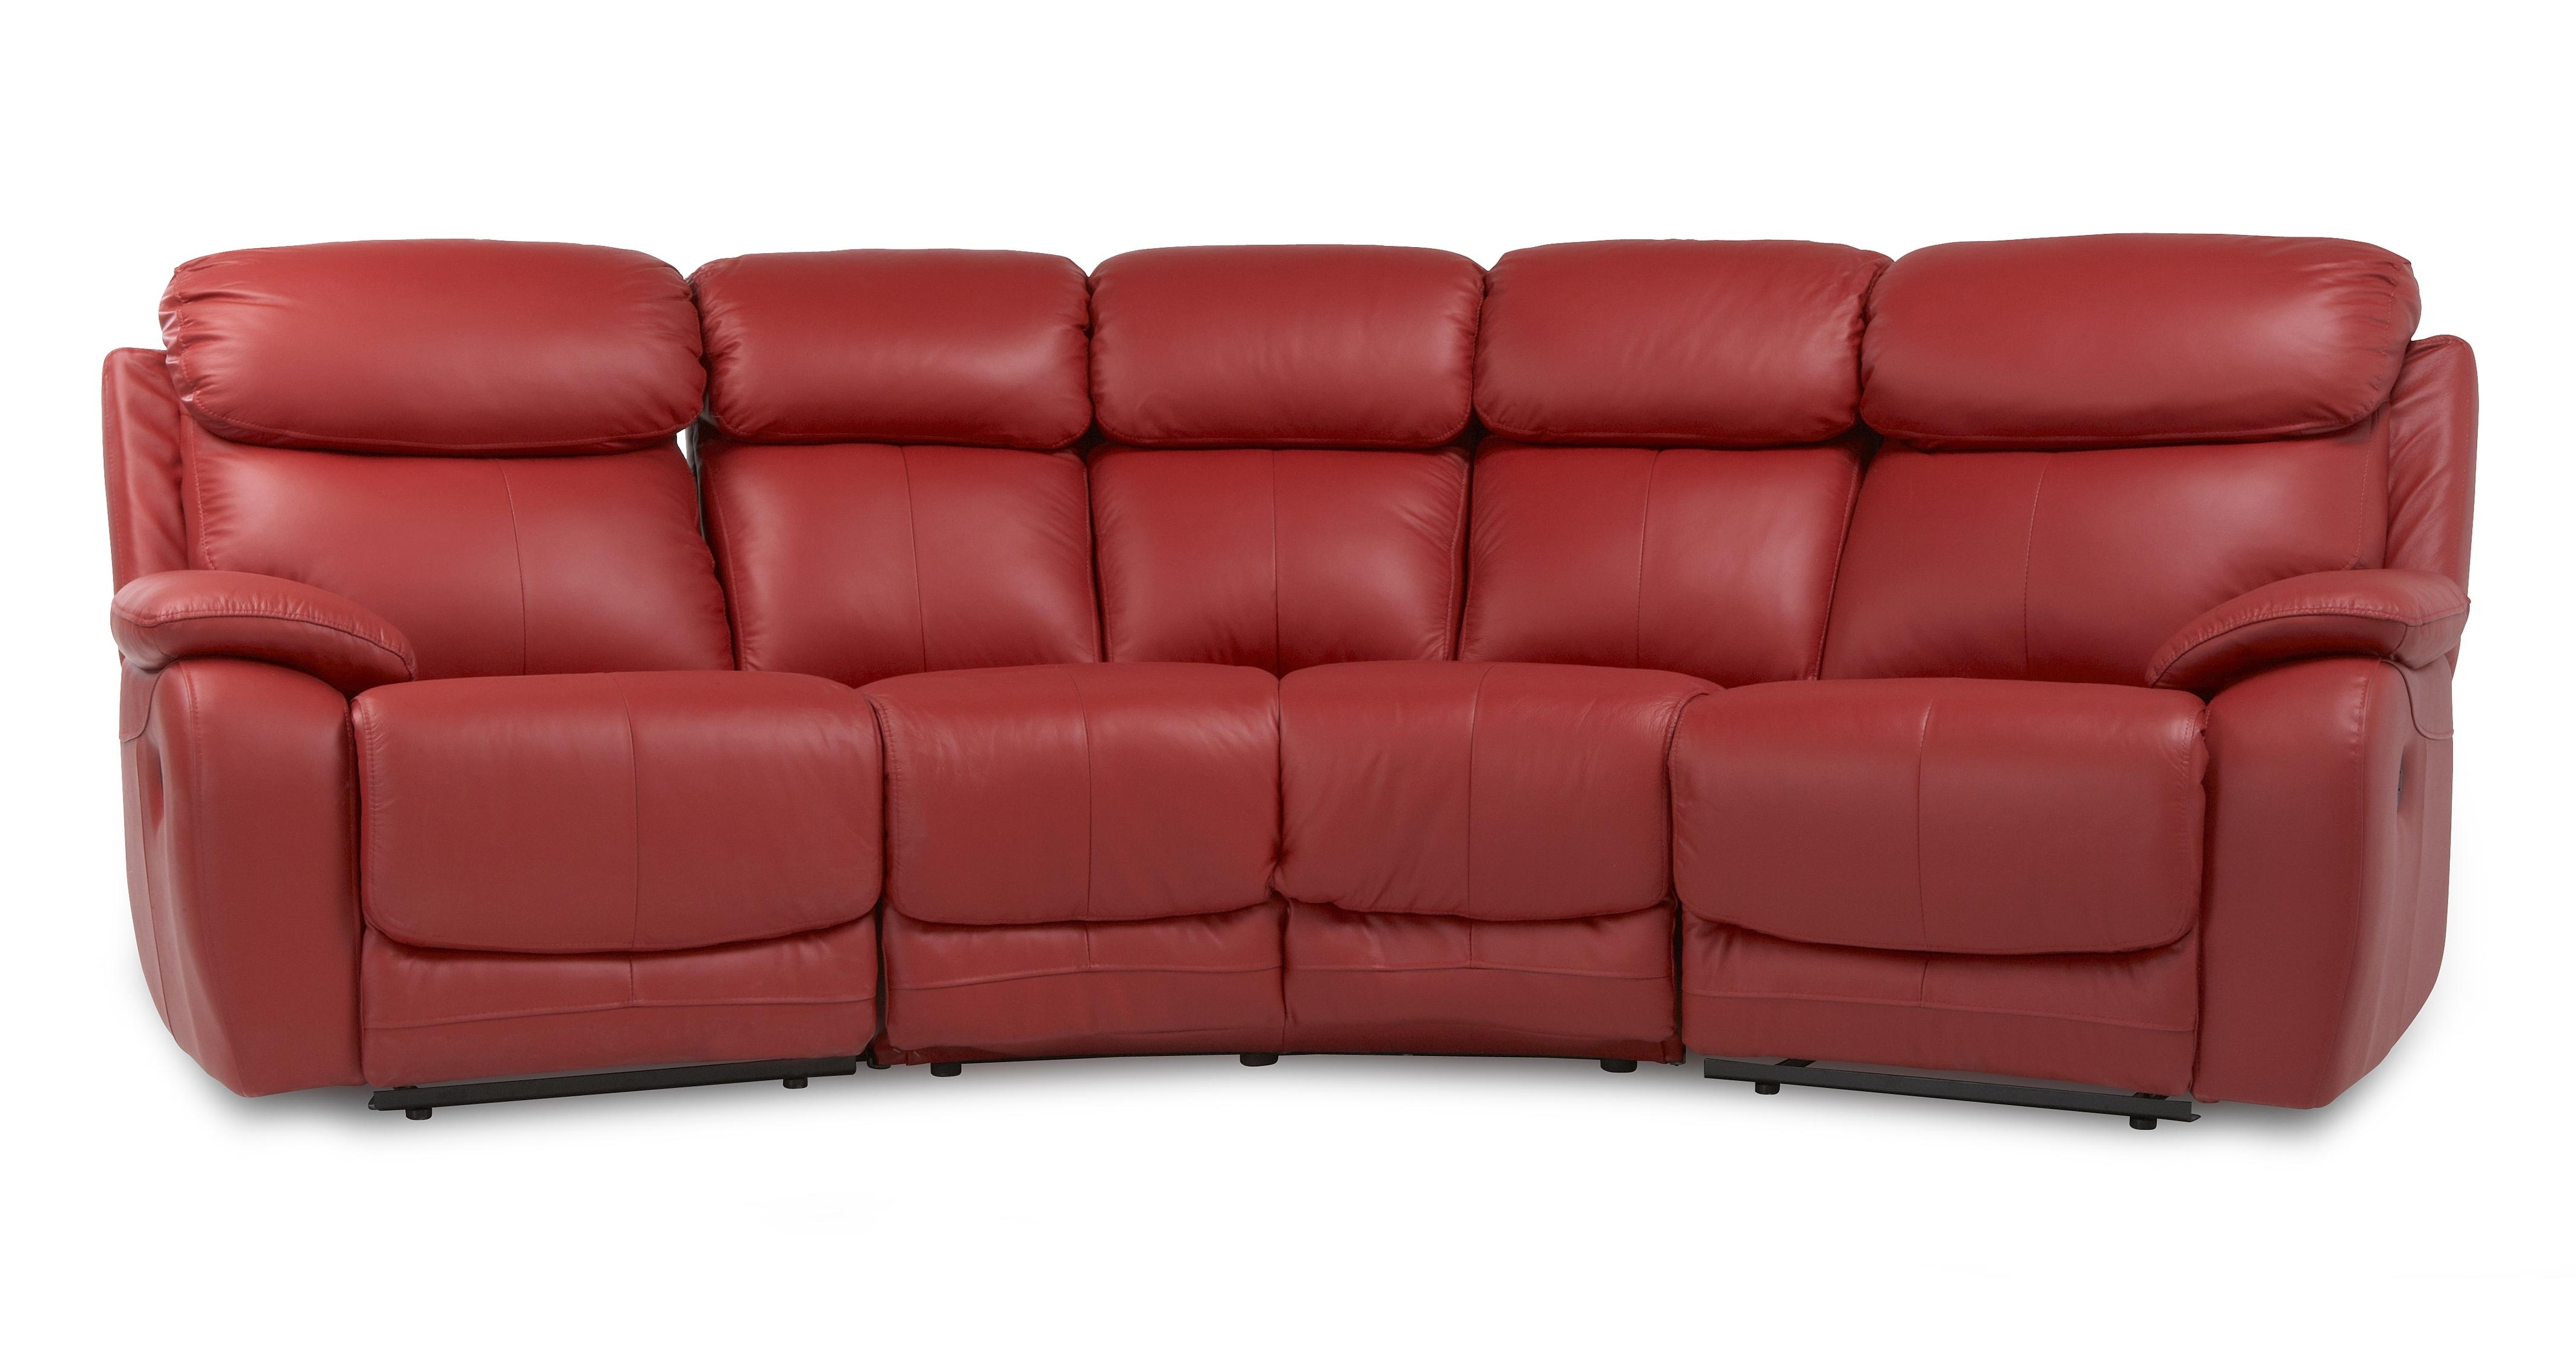 Curved Recliner Sofas In Popular Recliners Chairs & Sofa : 61 Most Astonishing Curved Recliner Sofa (View 3 of 15)